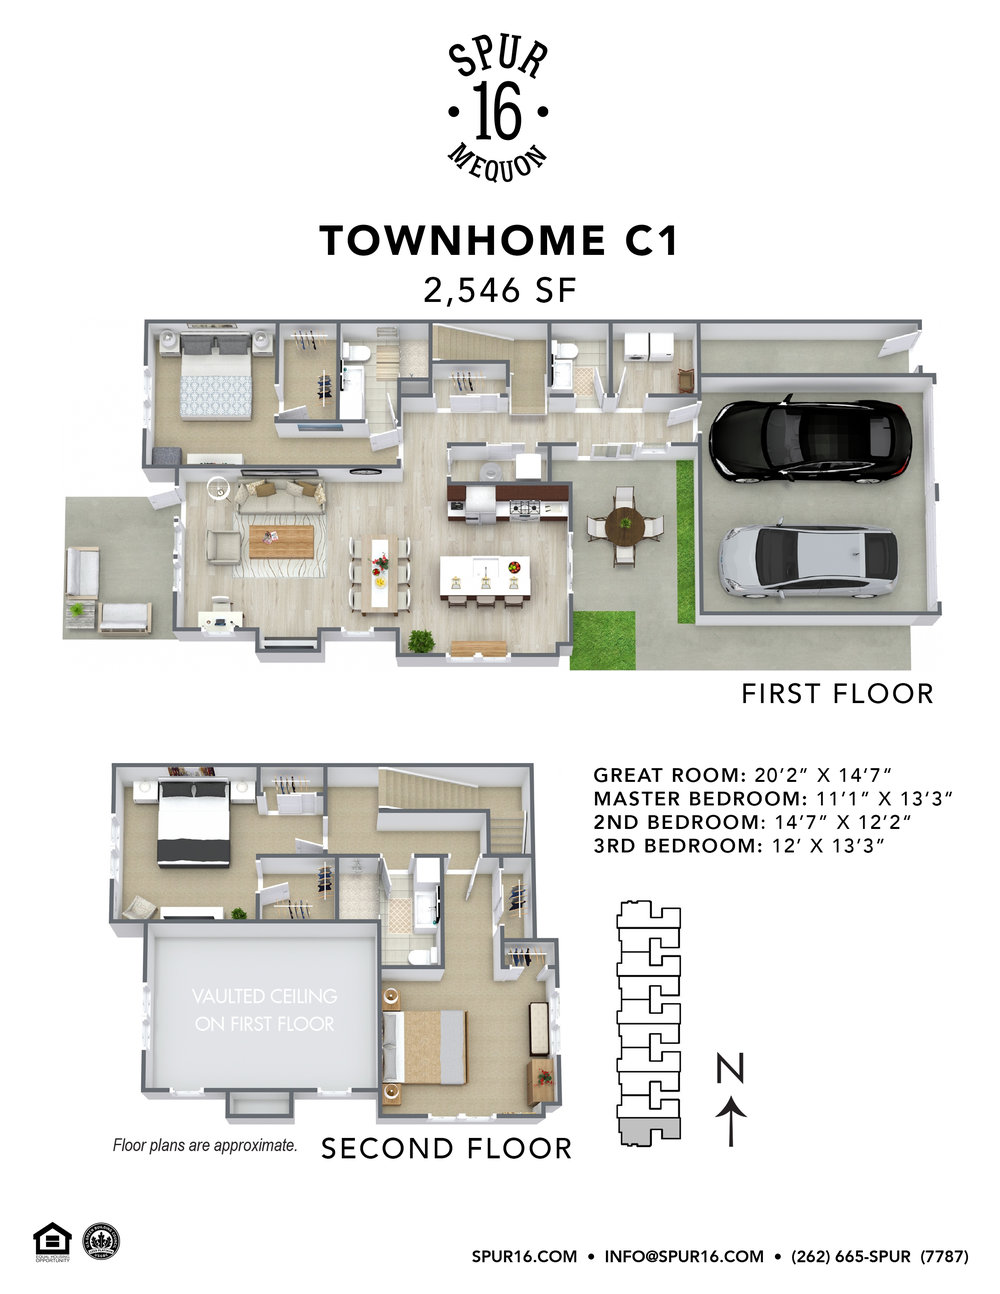 3D Floor Plan - Townhome C1.jpg